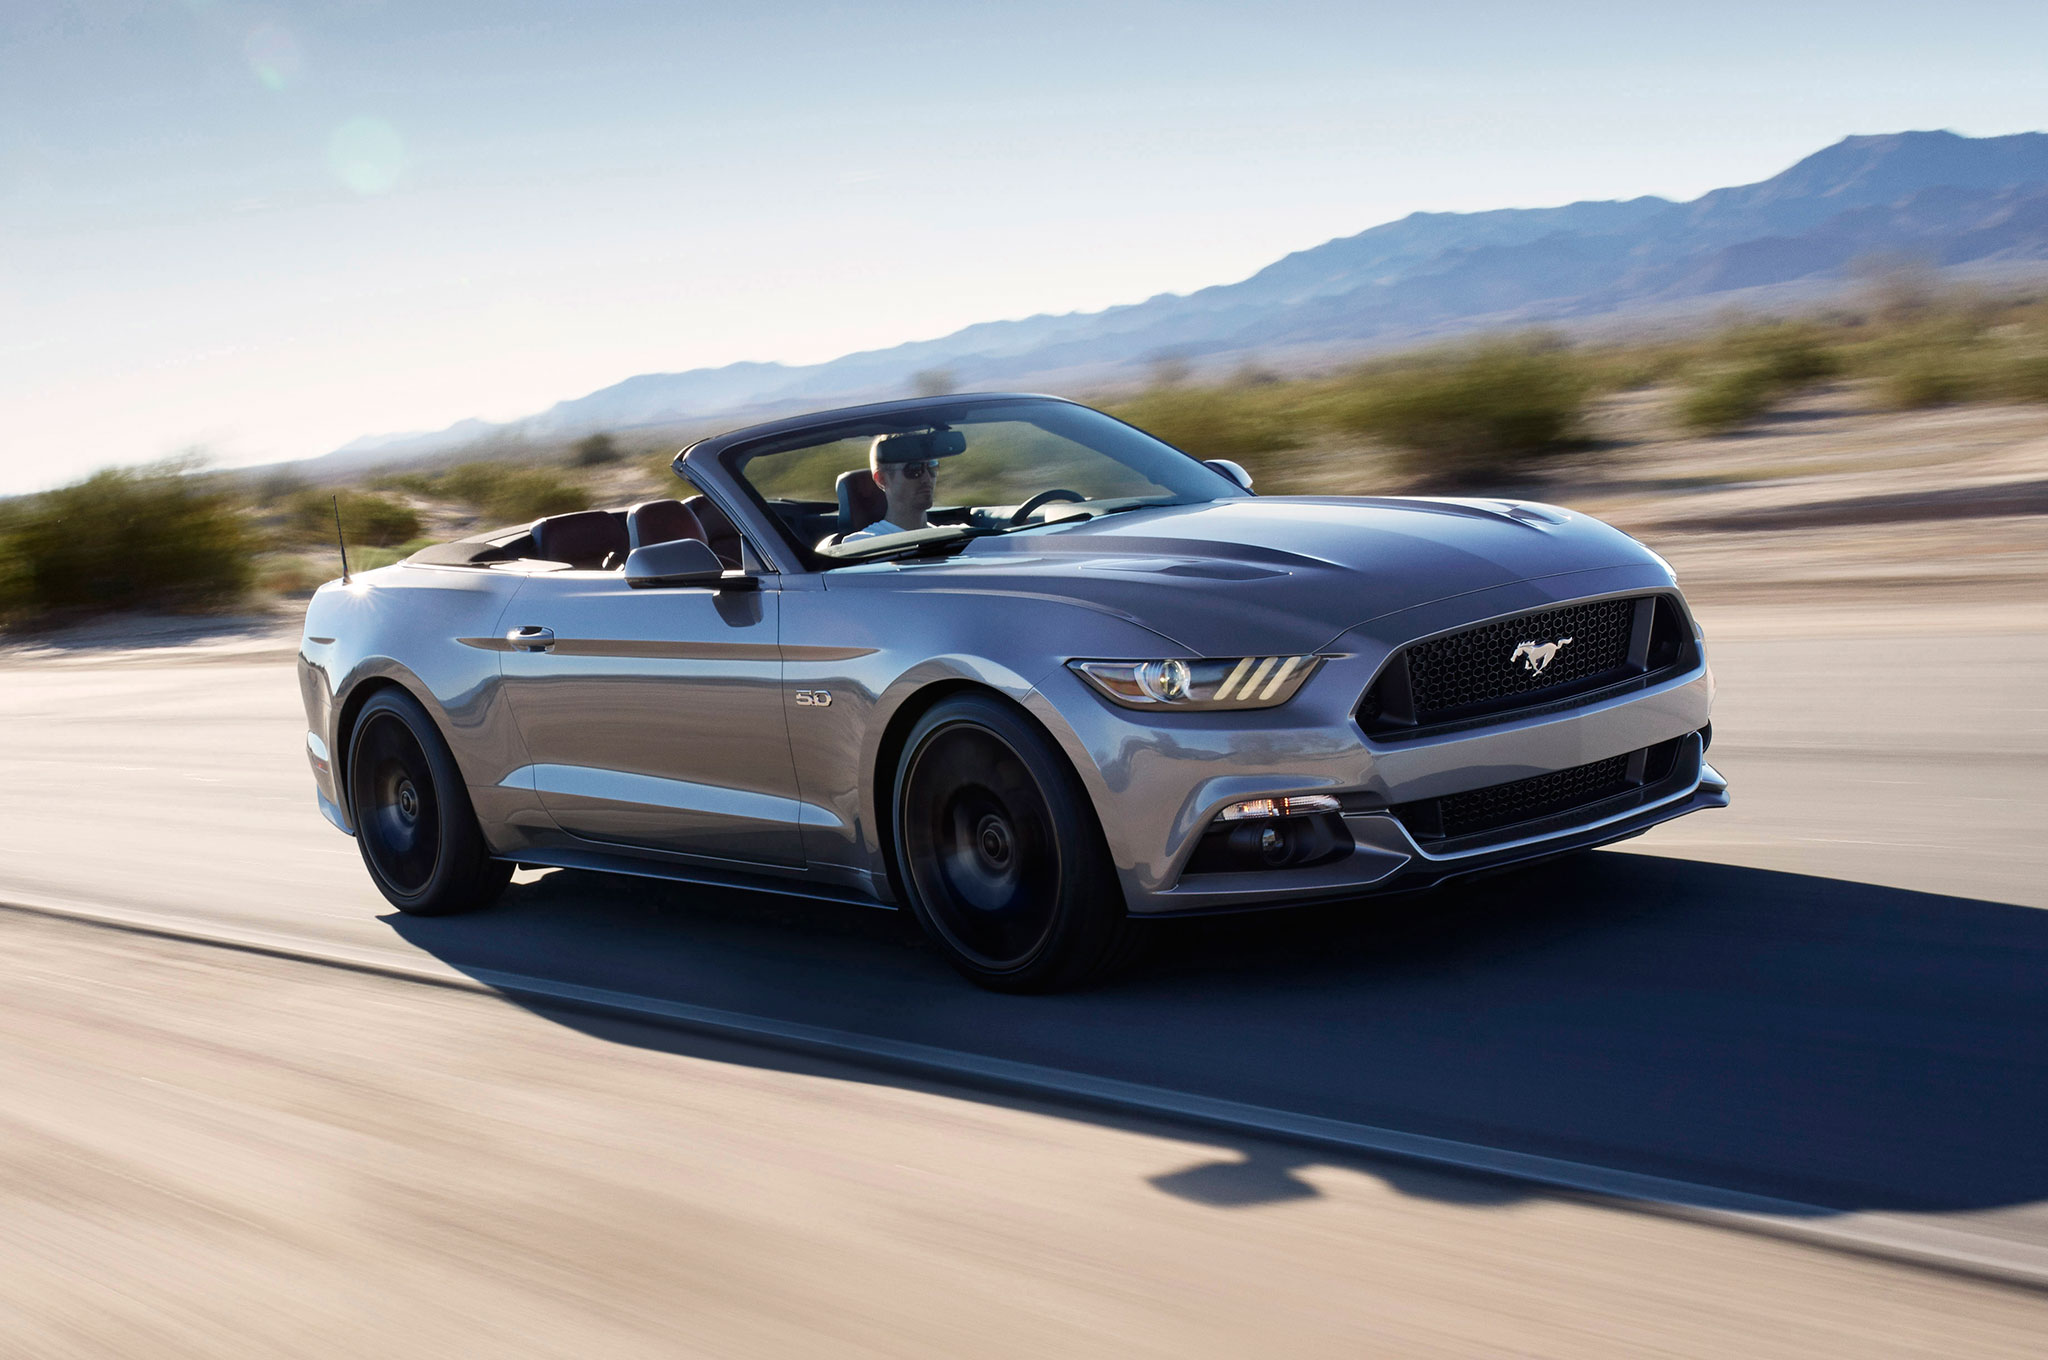 2016 ford mustang adds california special package hood turn signals. Black Bedroom Furniture Sets. Home Design Ideas